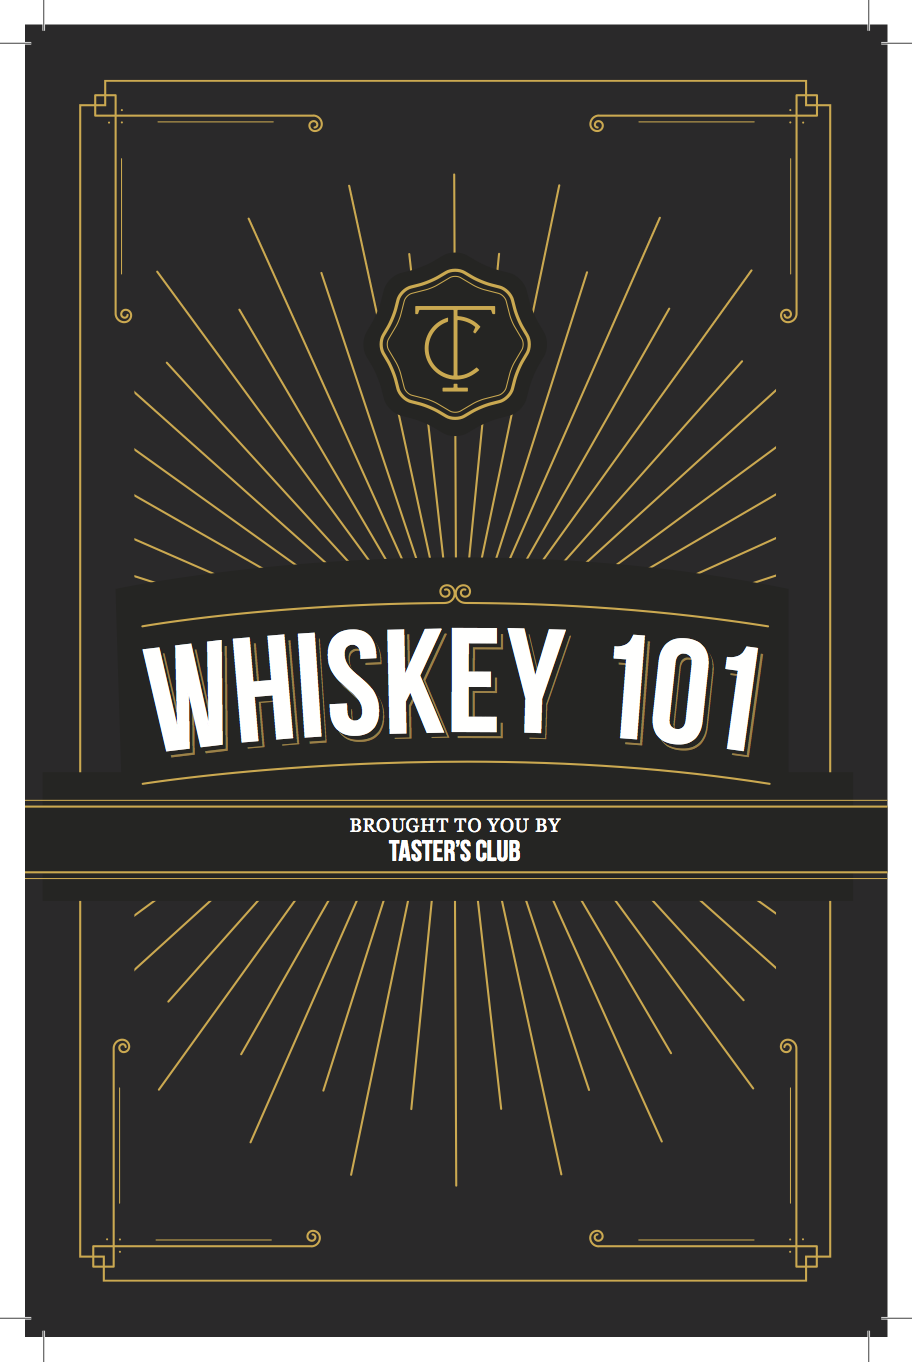 TC_Whiskey101_ADLaws (1) (dragged).png